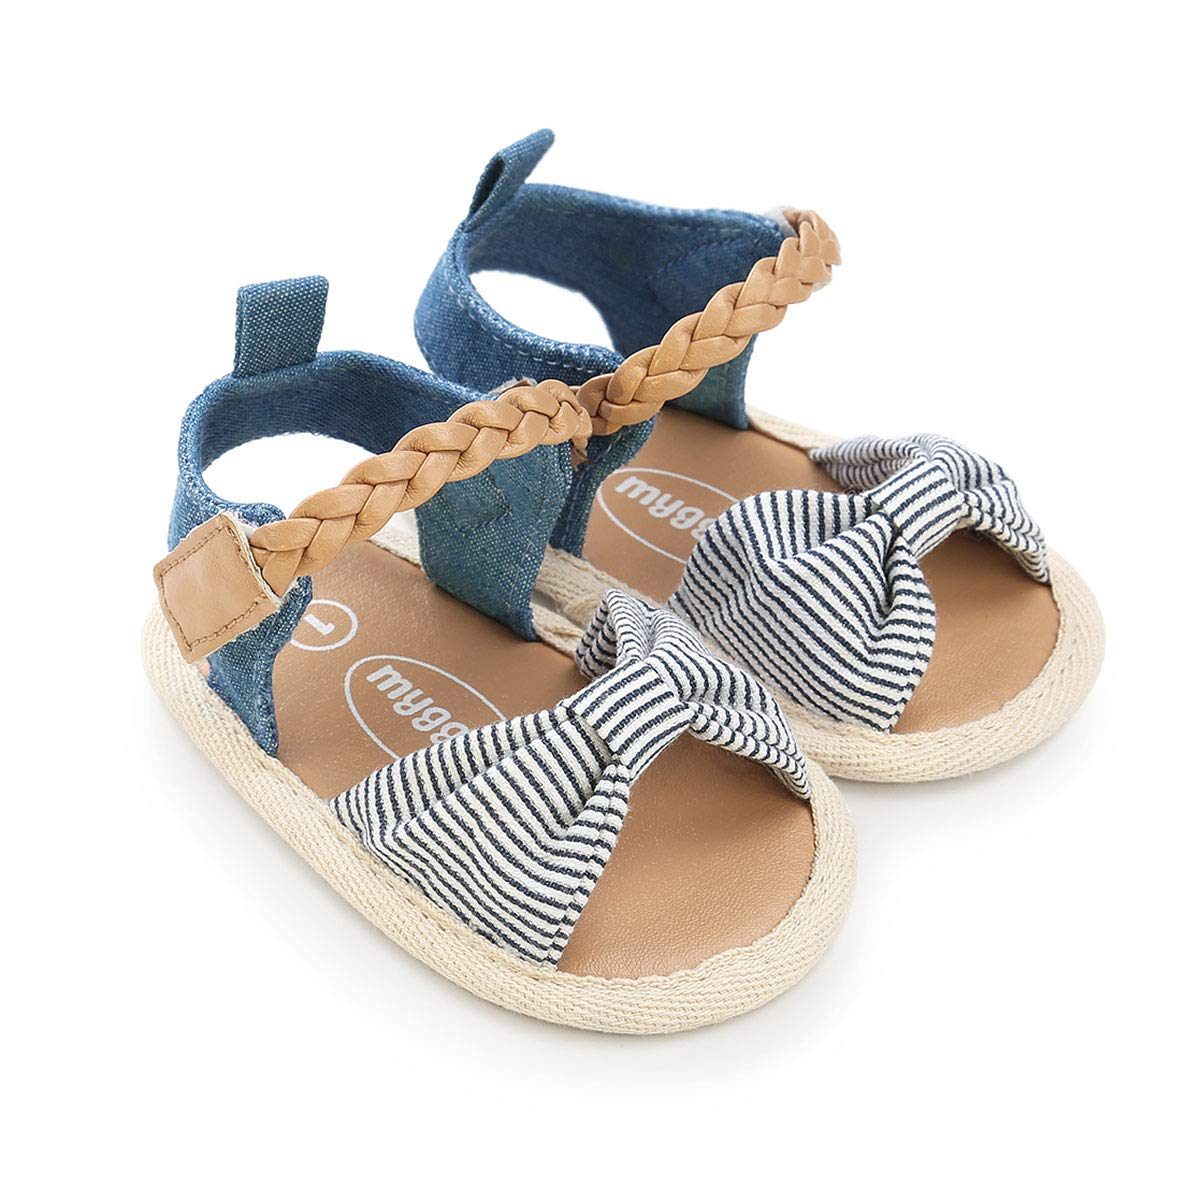 Infant Baby Girls Sandals Bowknots Summer Shoes Soft Sole T-Strap Toddler First Walker Crib Shoes